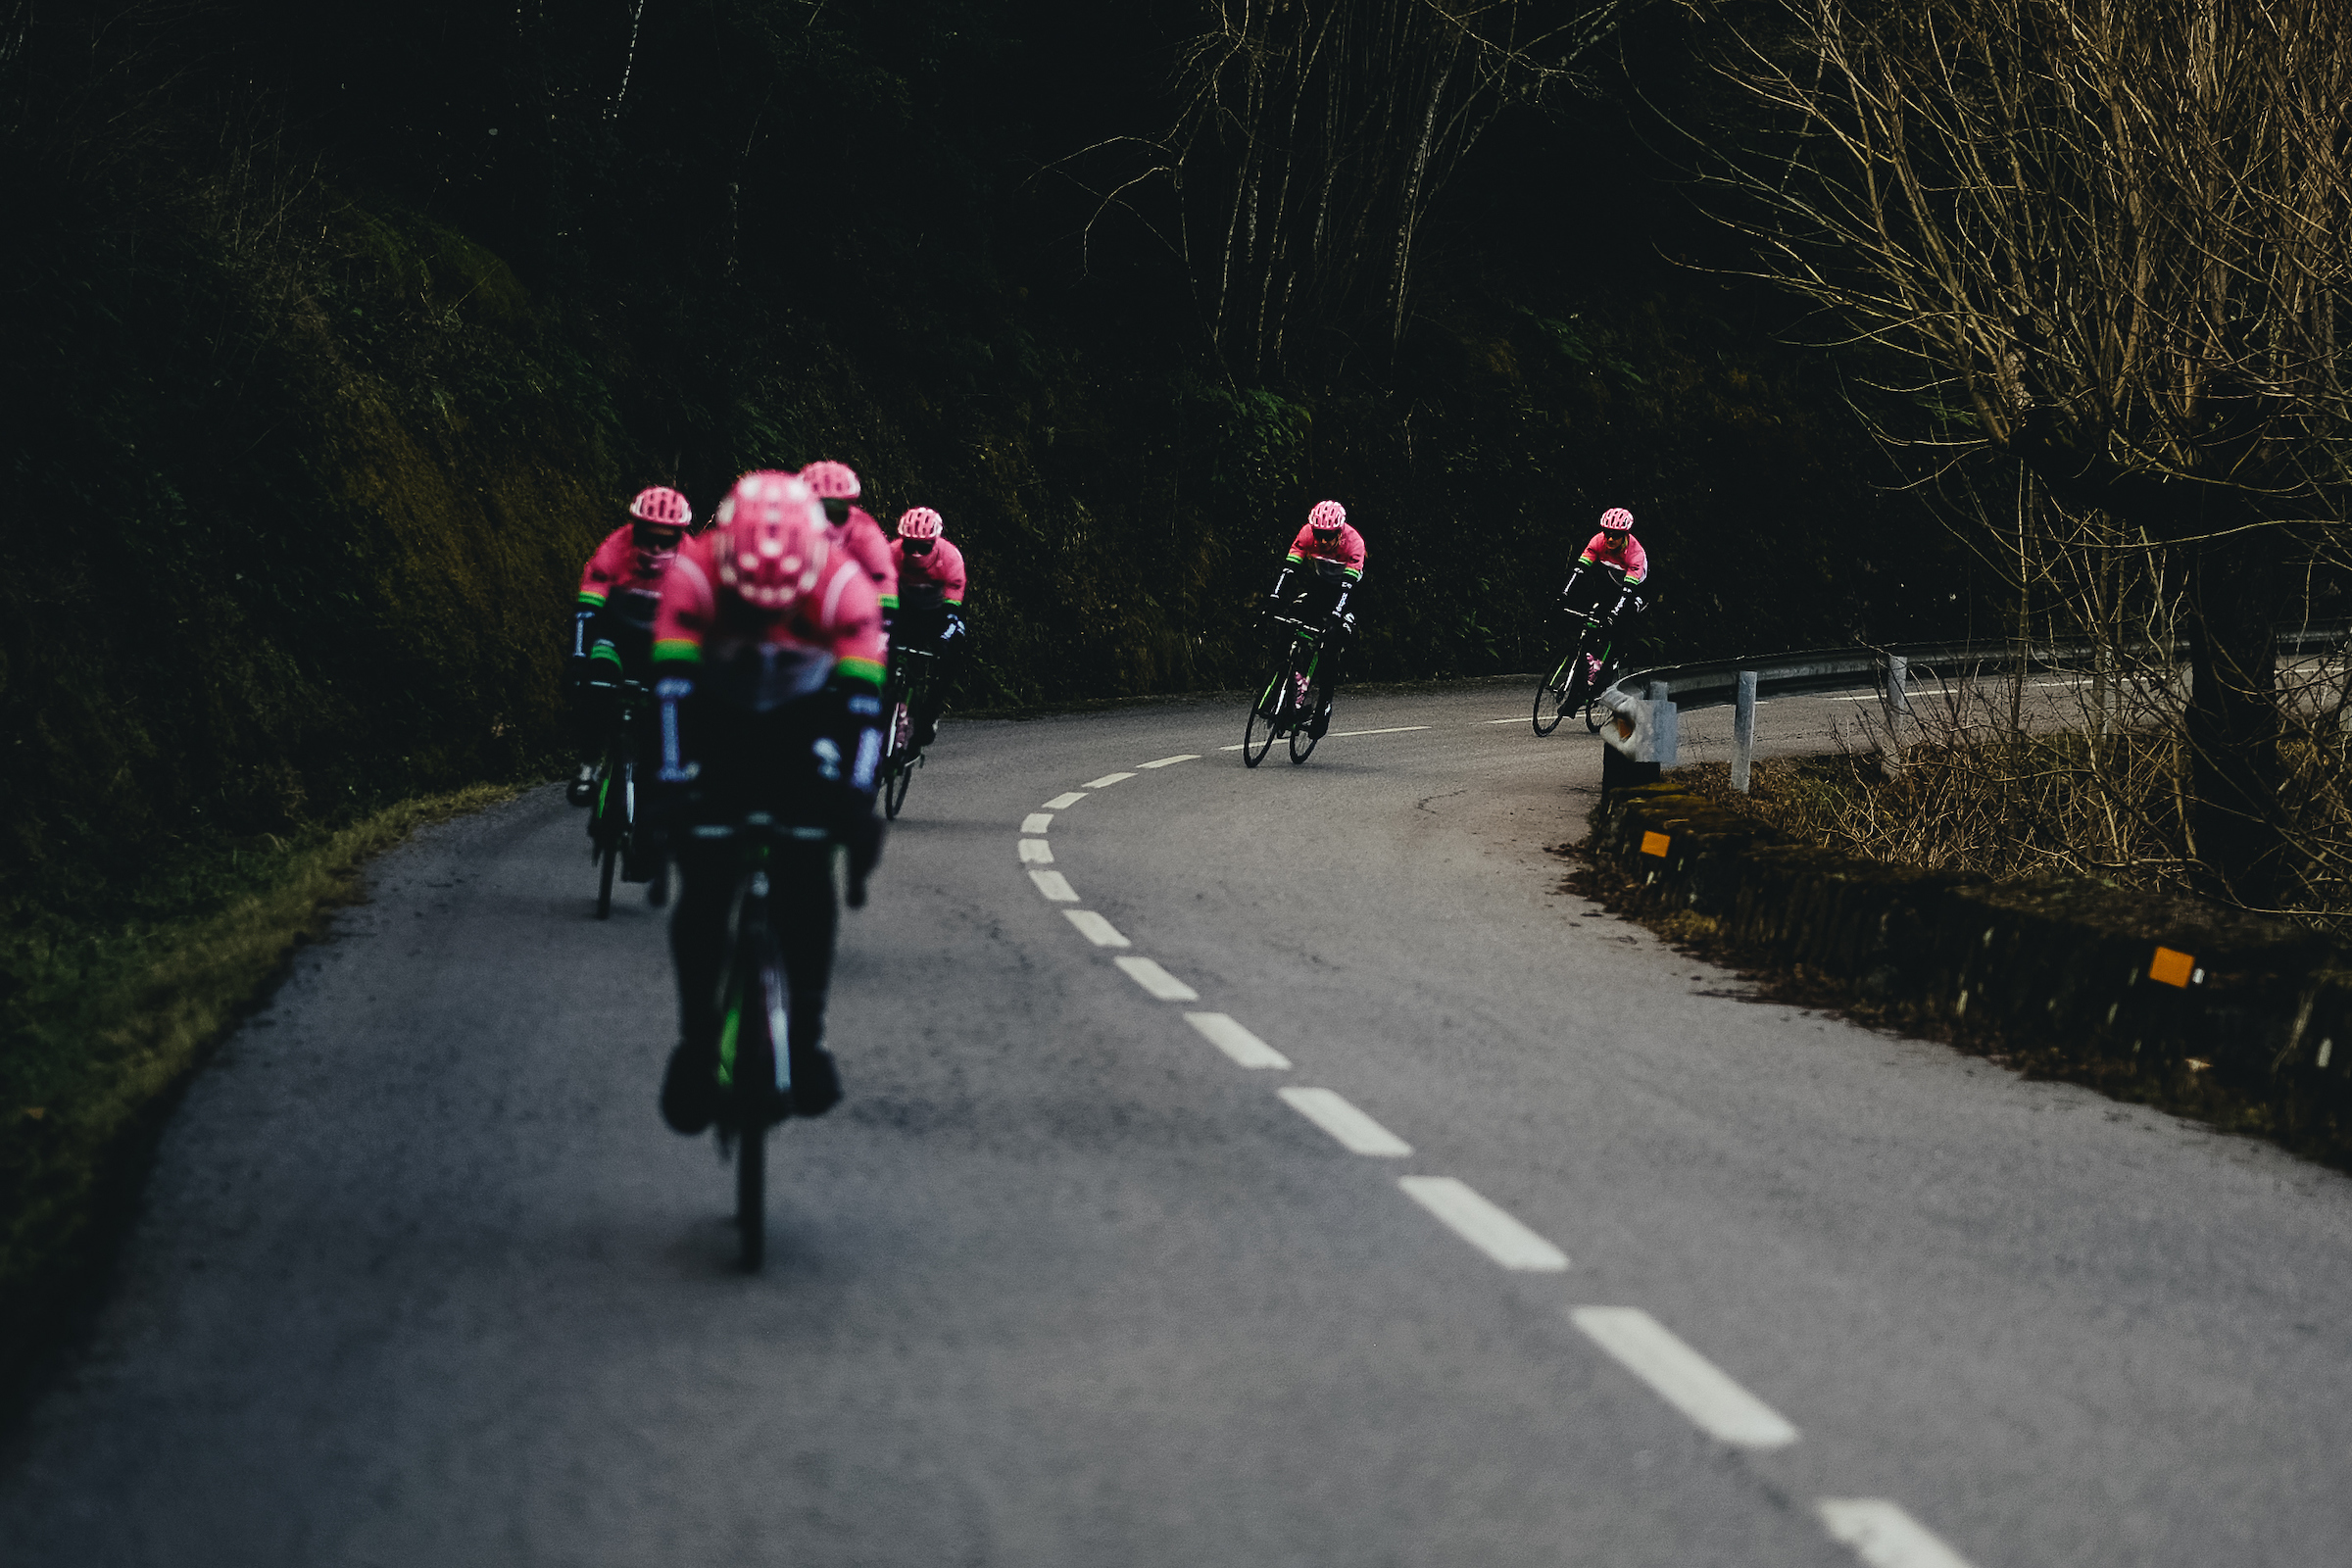 With their California roots and laidback attitude, the various incarnations of Jonathan Vaughters' team have always been regarded as being on the cooler side of pro cycling.